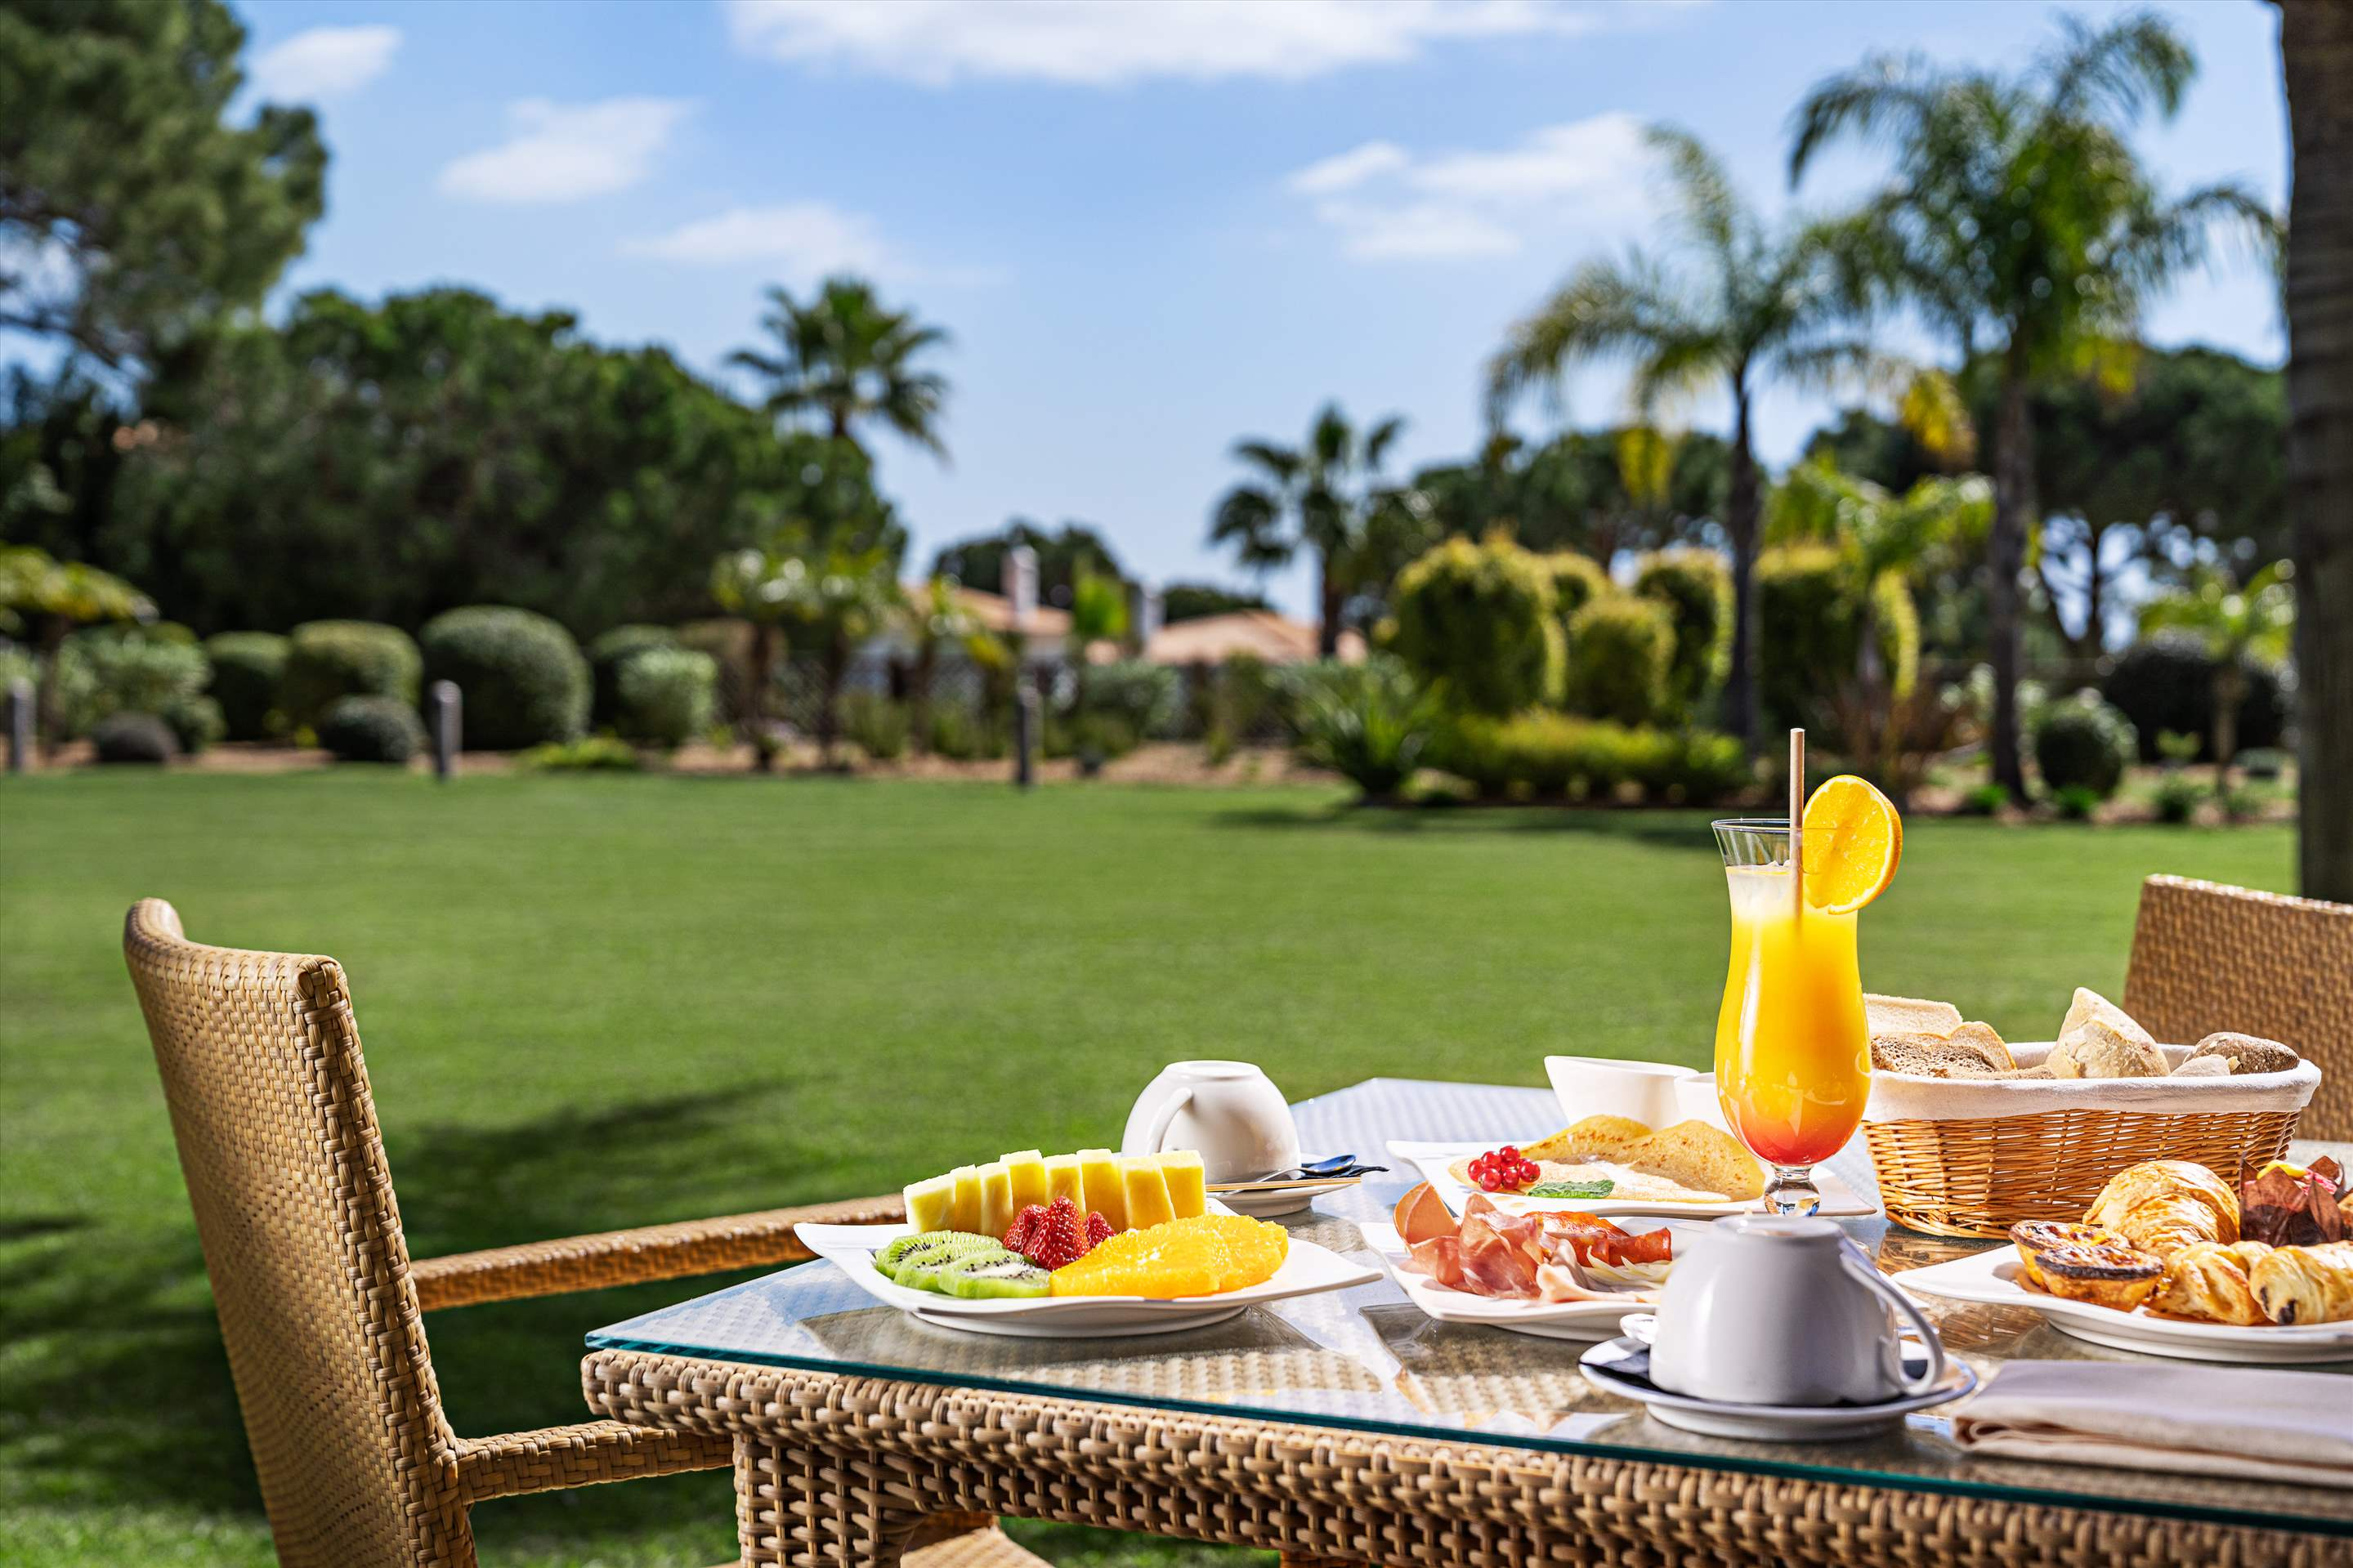 Wyndham Grand Algarve 1 Bedroom, Deluxe Suite, Pool Side ,Room Only , 1 bedroom apartment in Wyndham Grand Algarve, Algarve Photo #26